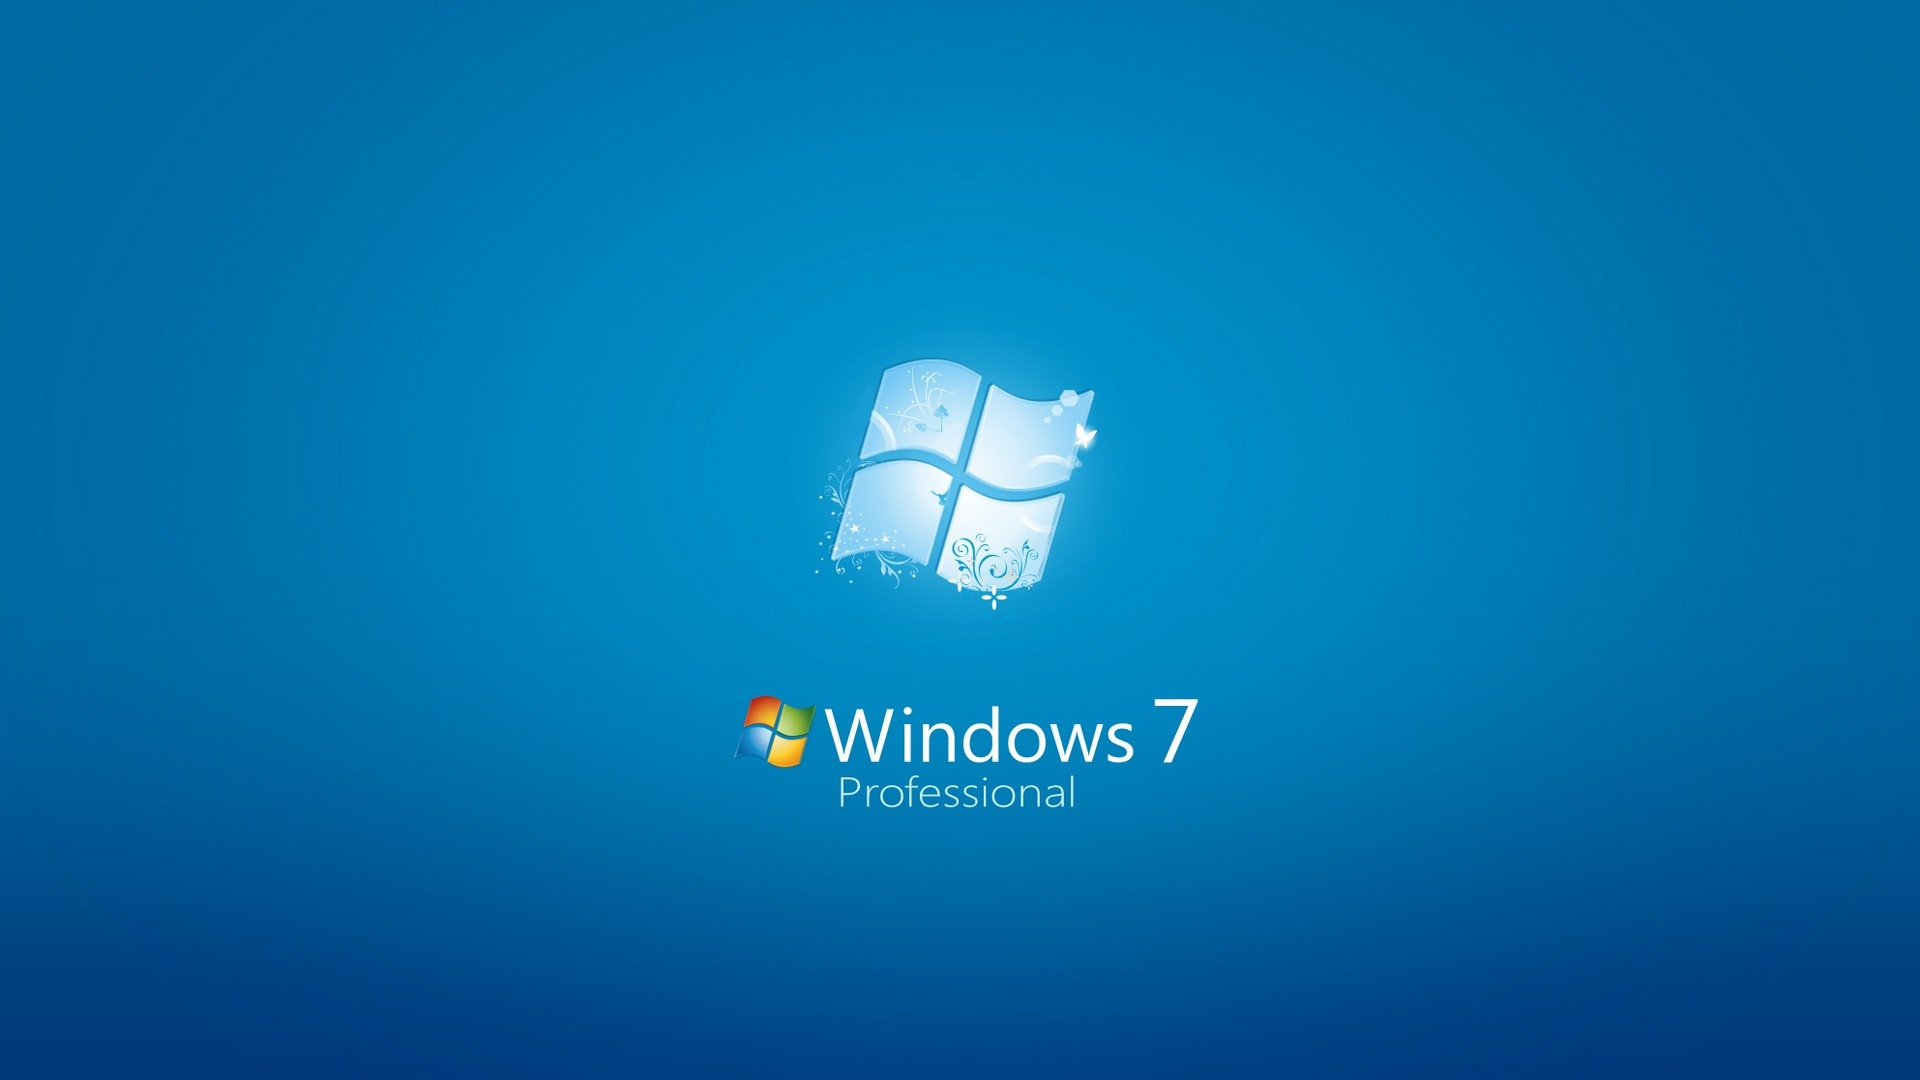 Windows 7 Wallpapers Themes